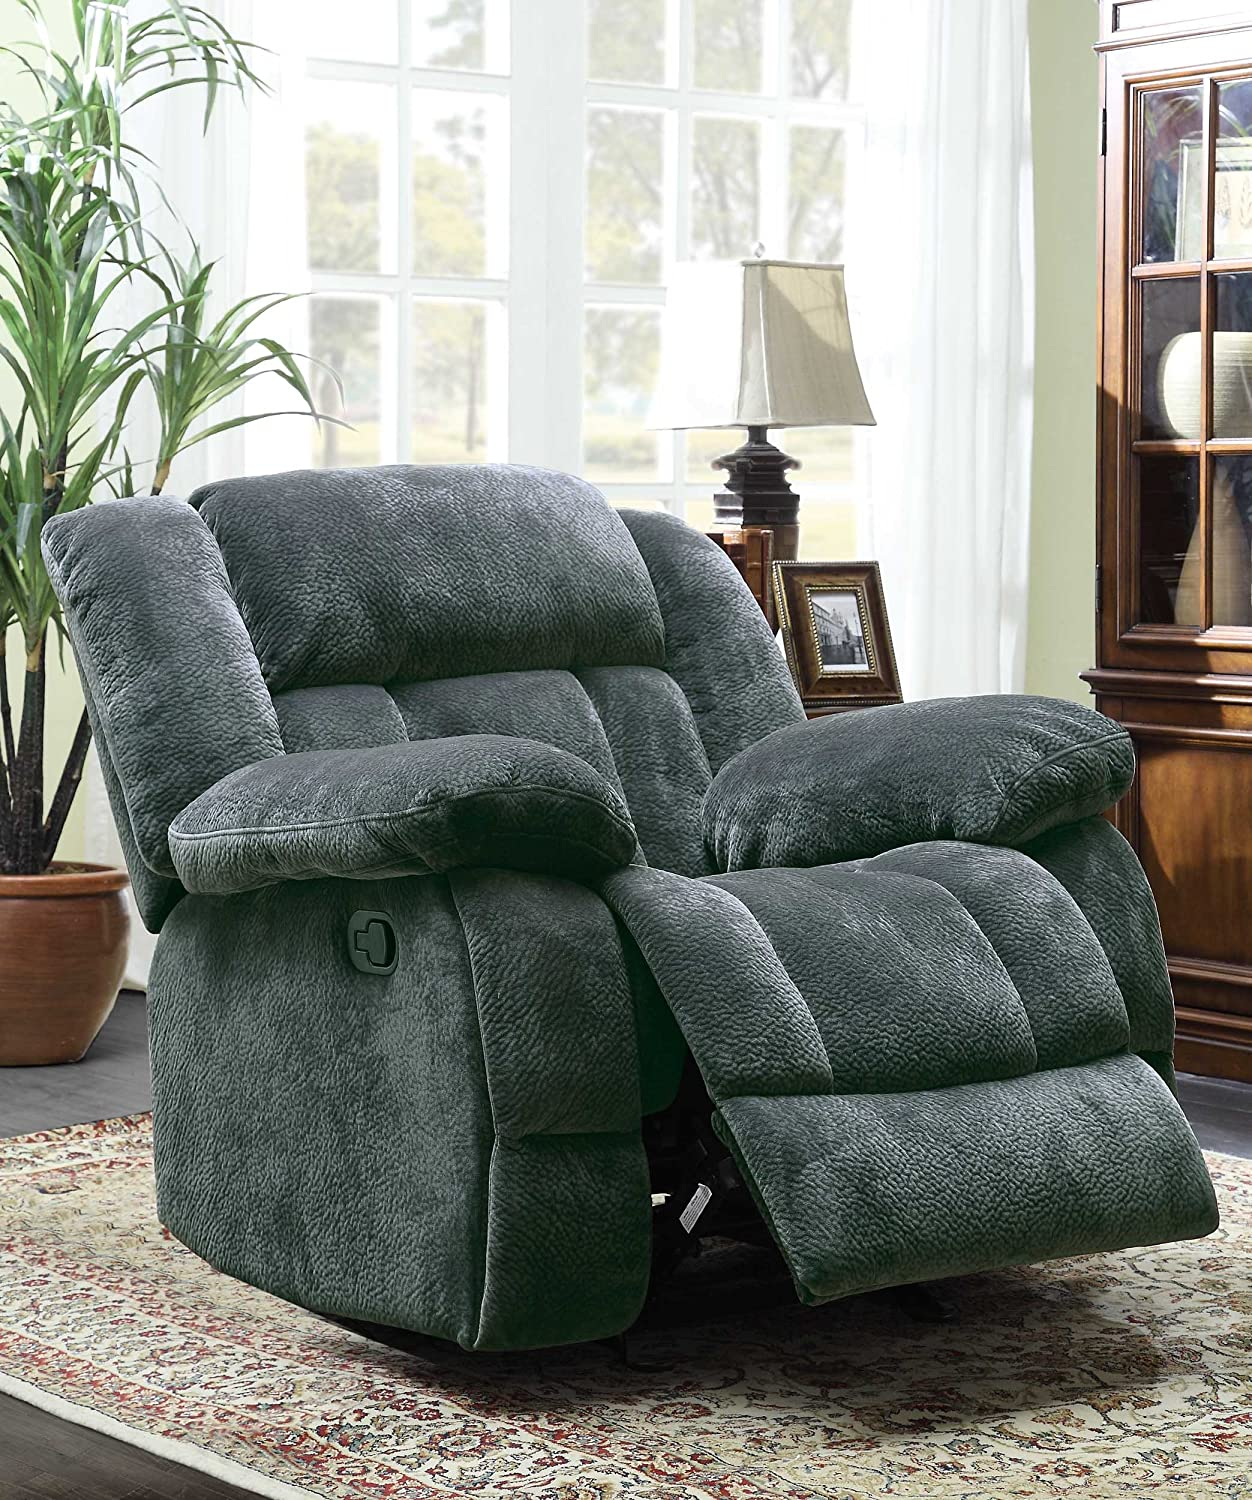 Amazon.com Homelegance 9636CC-1 Laurelton Textured Plush Microfiber Glider Recliner Chair Gray Kitchen u0026 Dining & Amazon.com: Homelegance 9636CC-1 Laurelton Textured Plush ... islam-shia.org